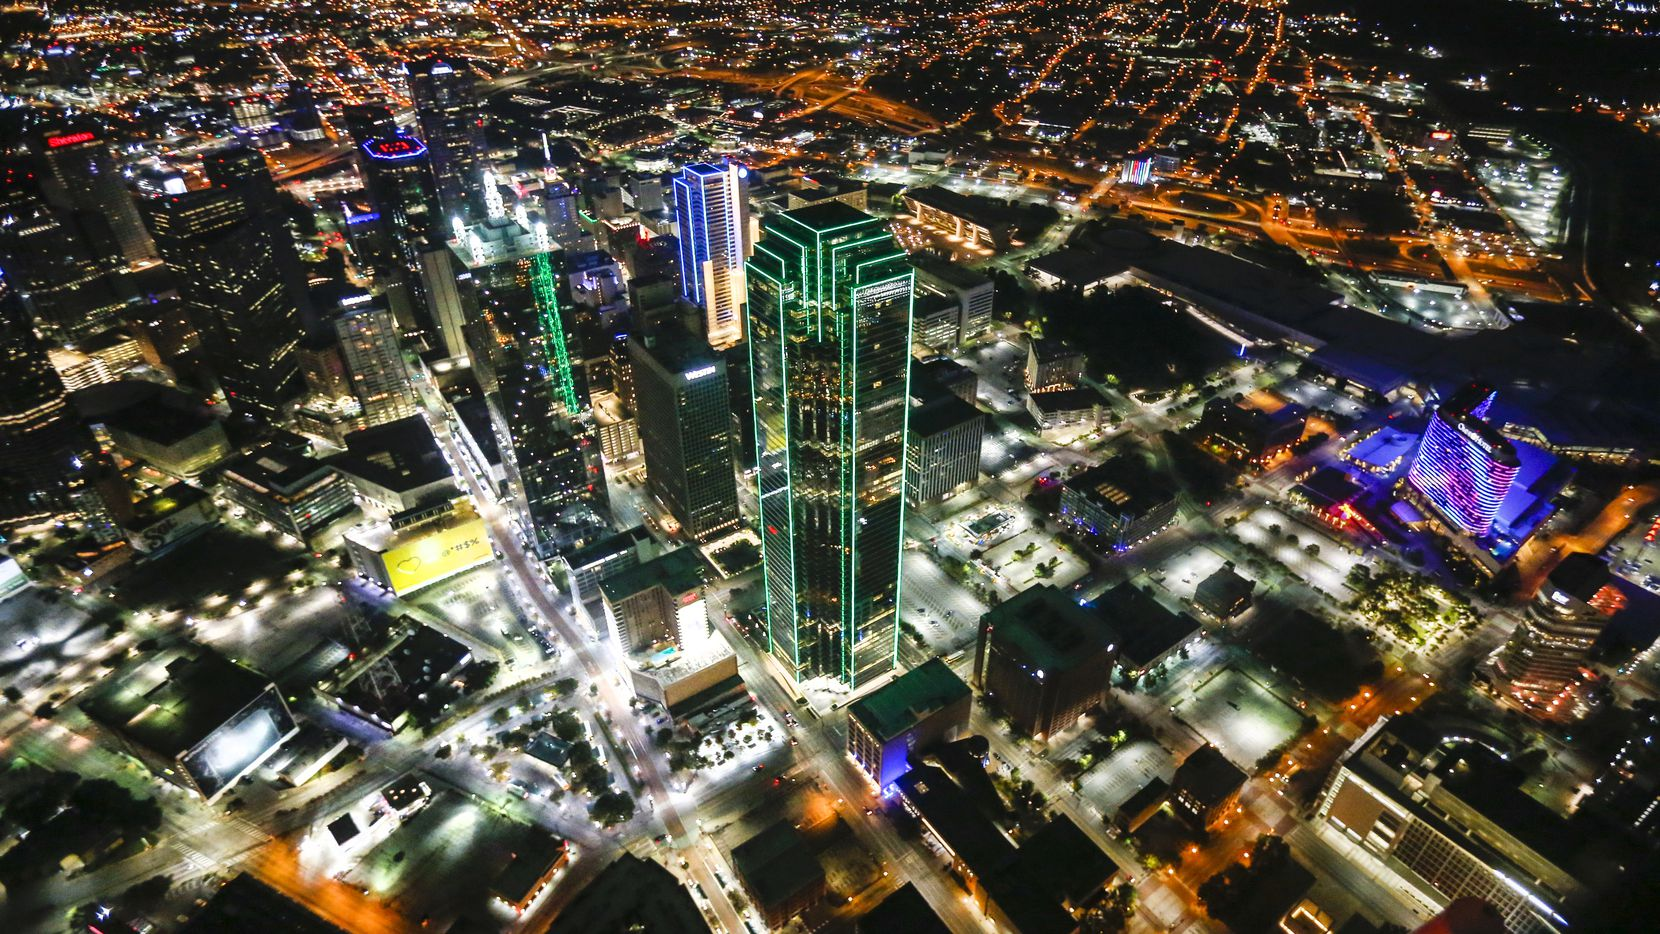 The Dallas skyline as seen from a Dallas police helicopter in early November.